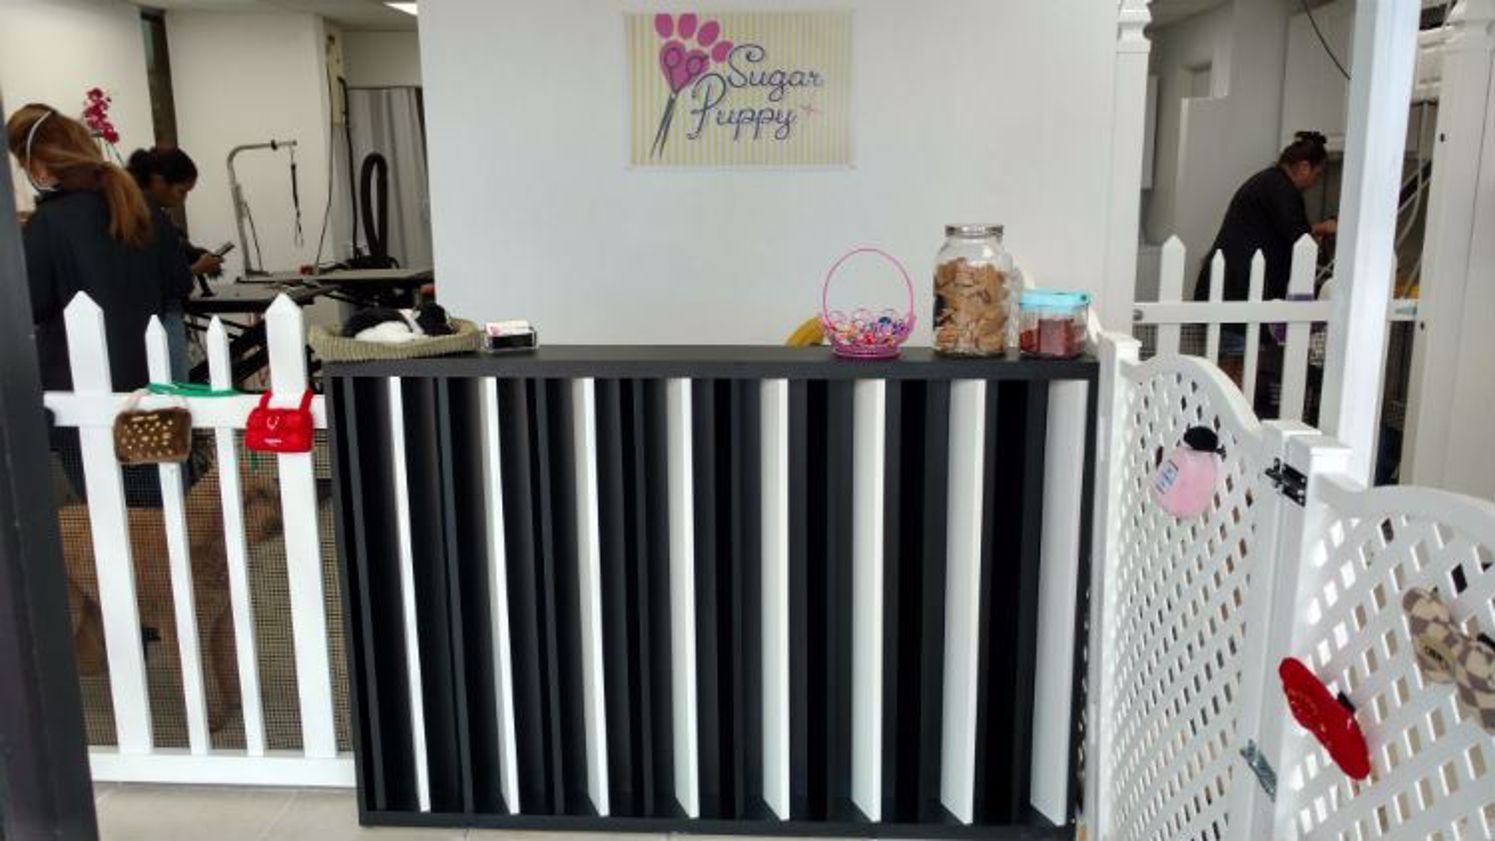 Sugar Puppy Grooming & Spa